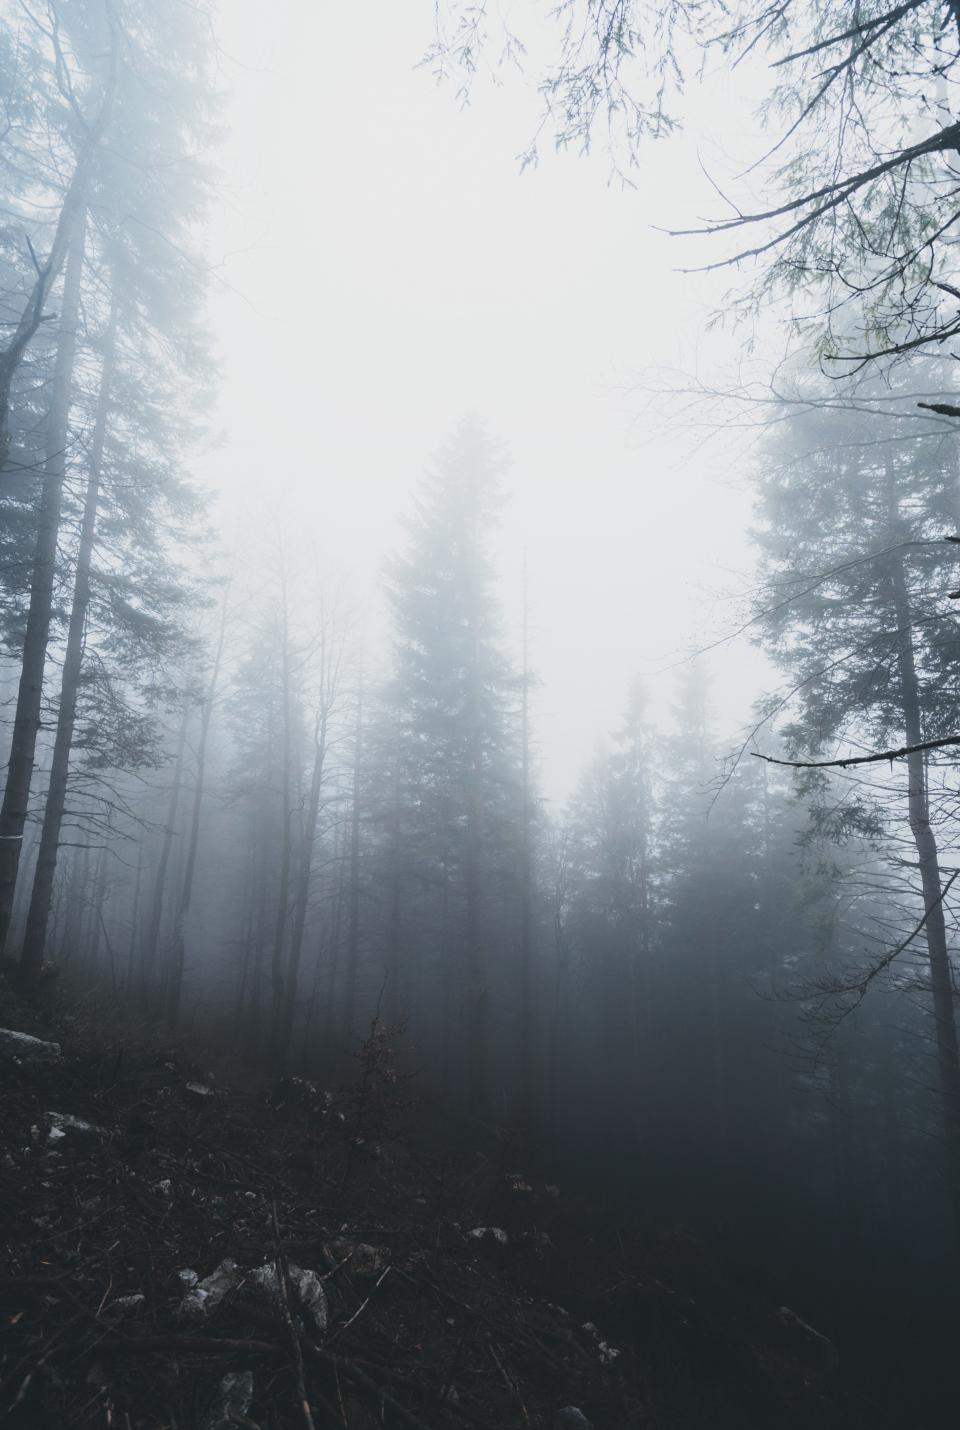 woods forest mountain trees plants foggy landscape nature outdoor